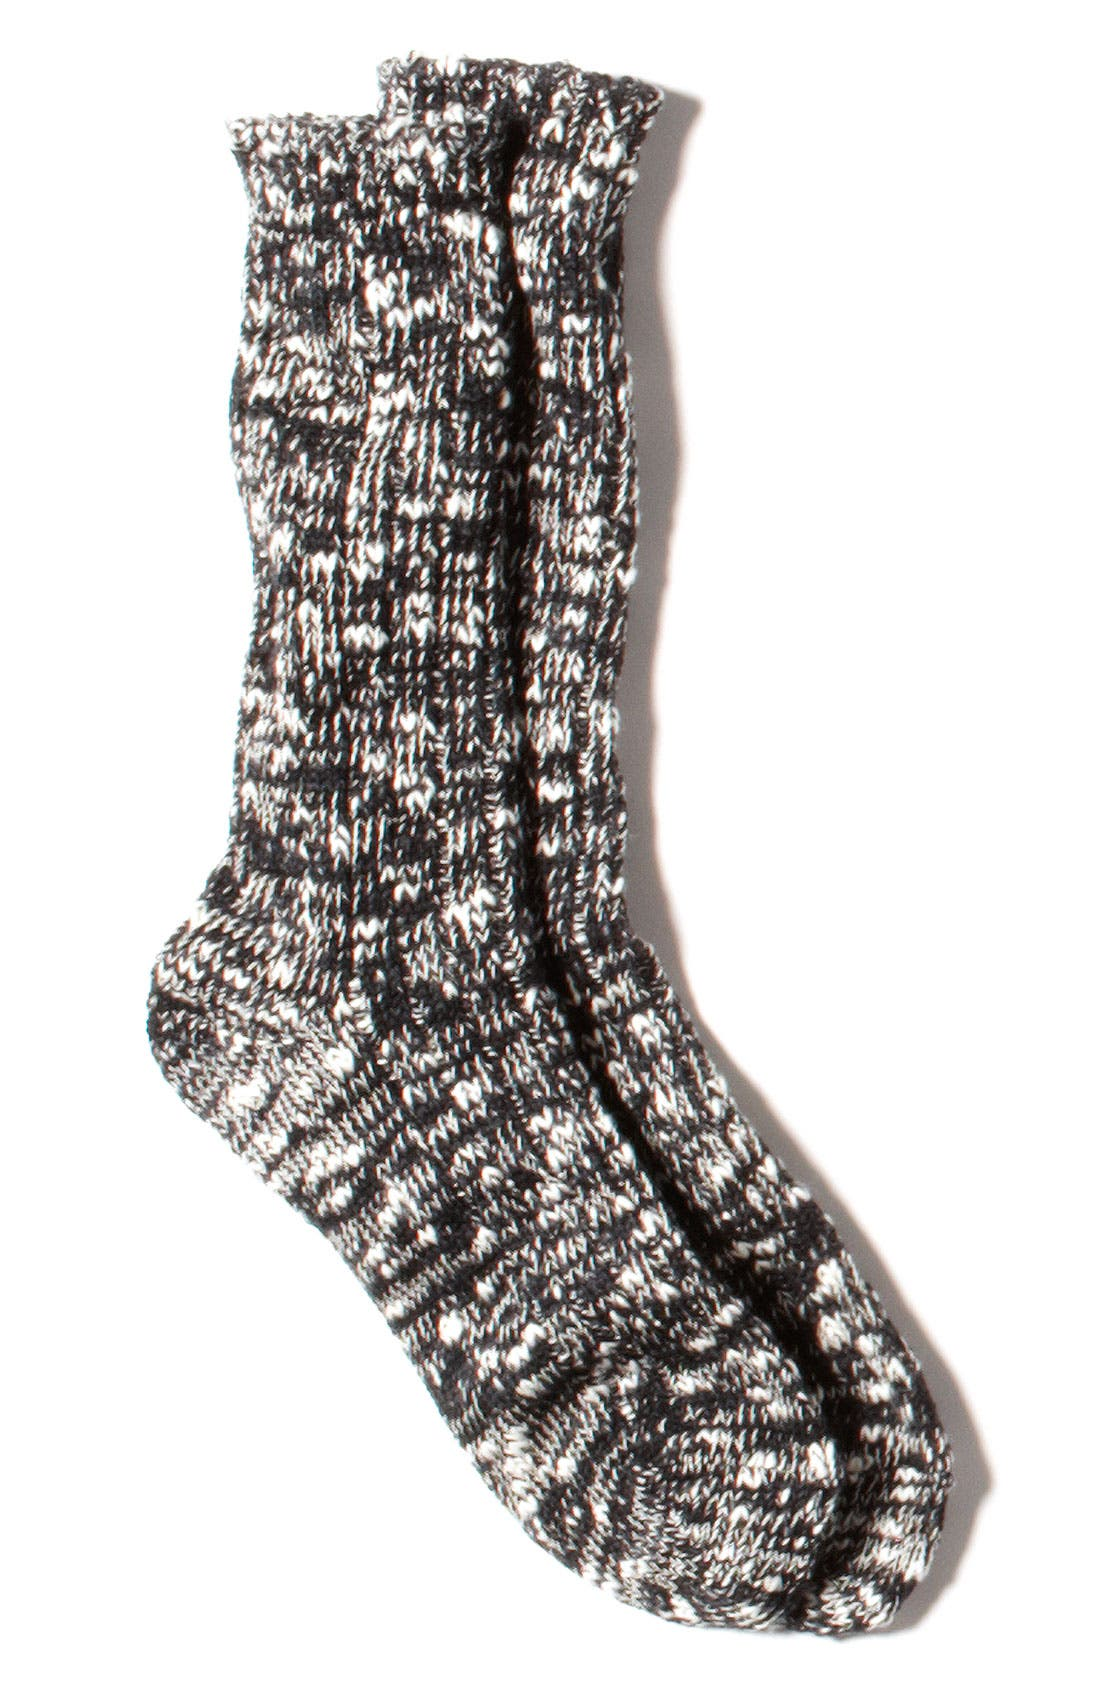 Ragg Knit Socks,                             Alternate thumbnail 3, color,                             001